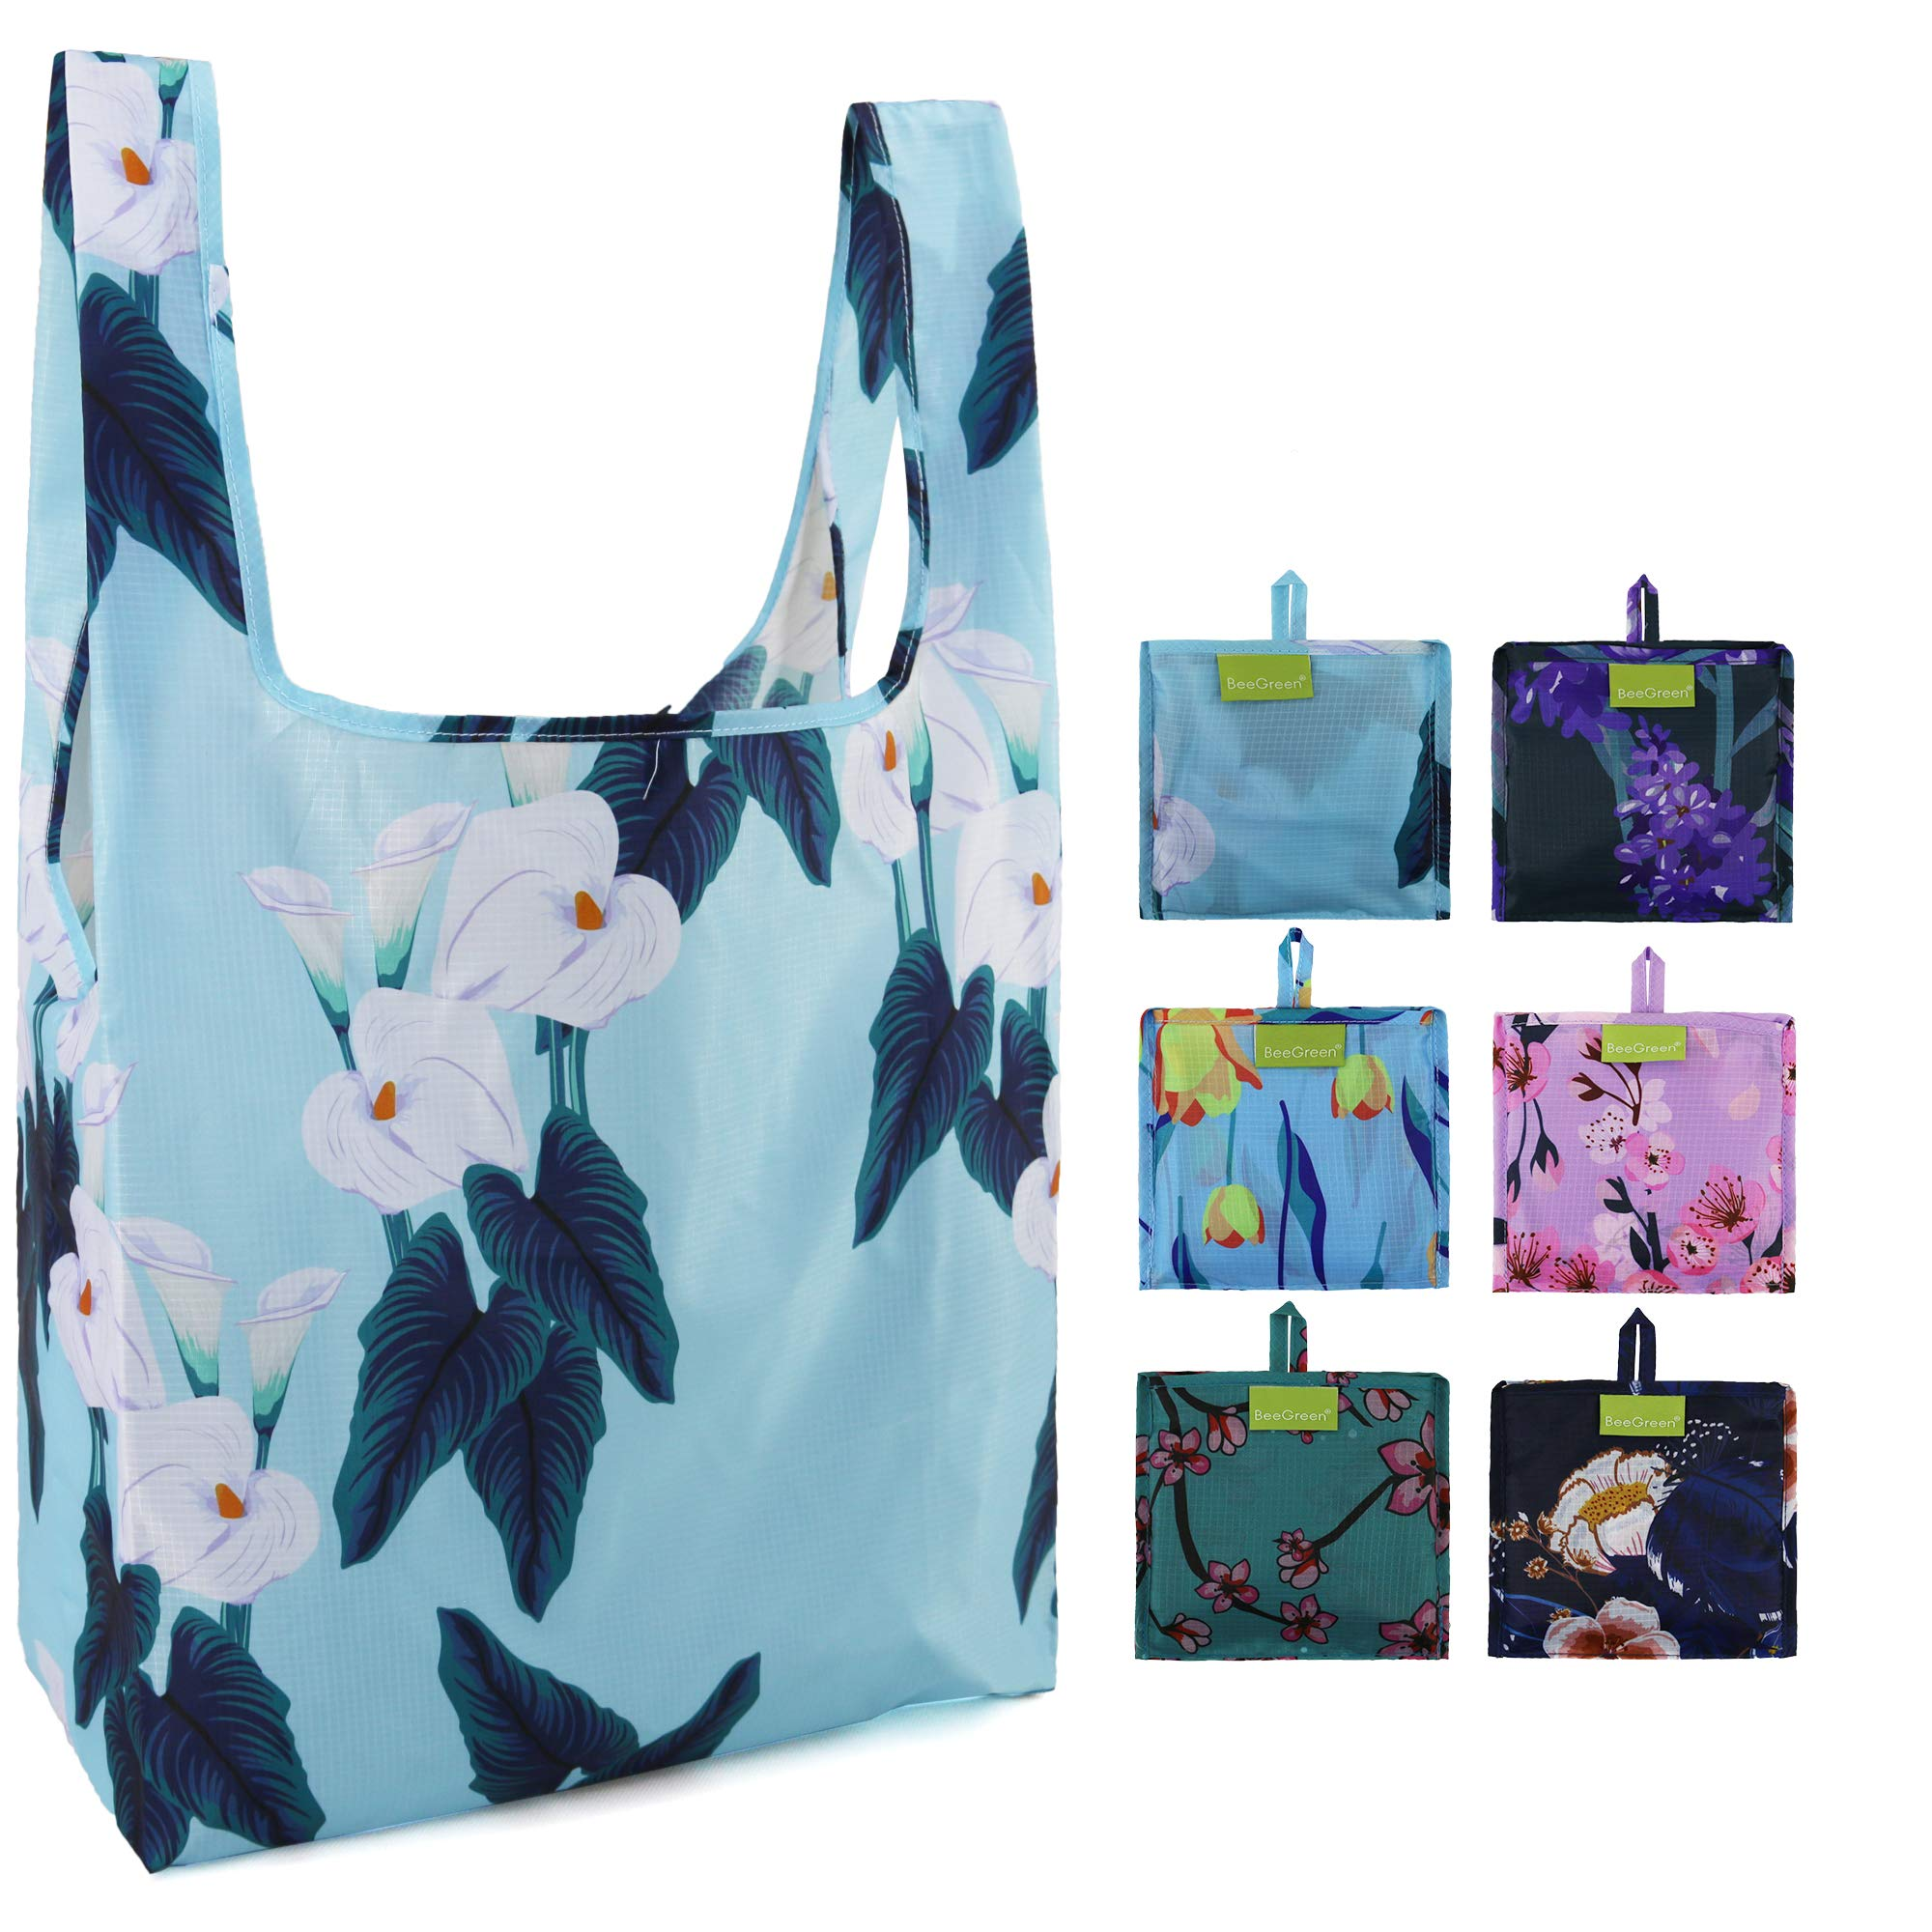 Reusable Grocery Bags Flower Pattern 5 Pack Reusable Shopping bags Foldable Mashine Washable